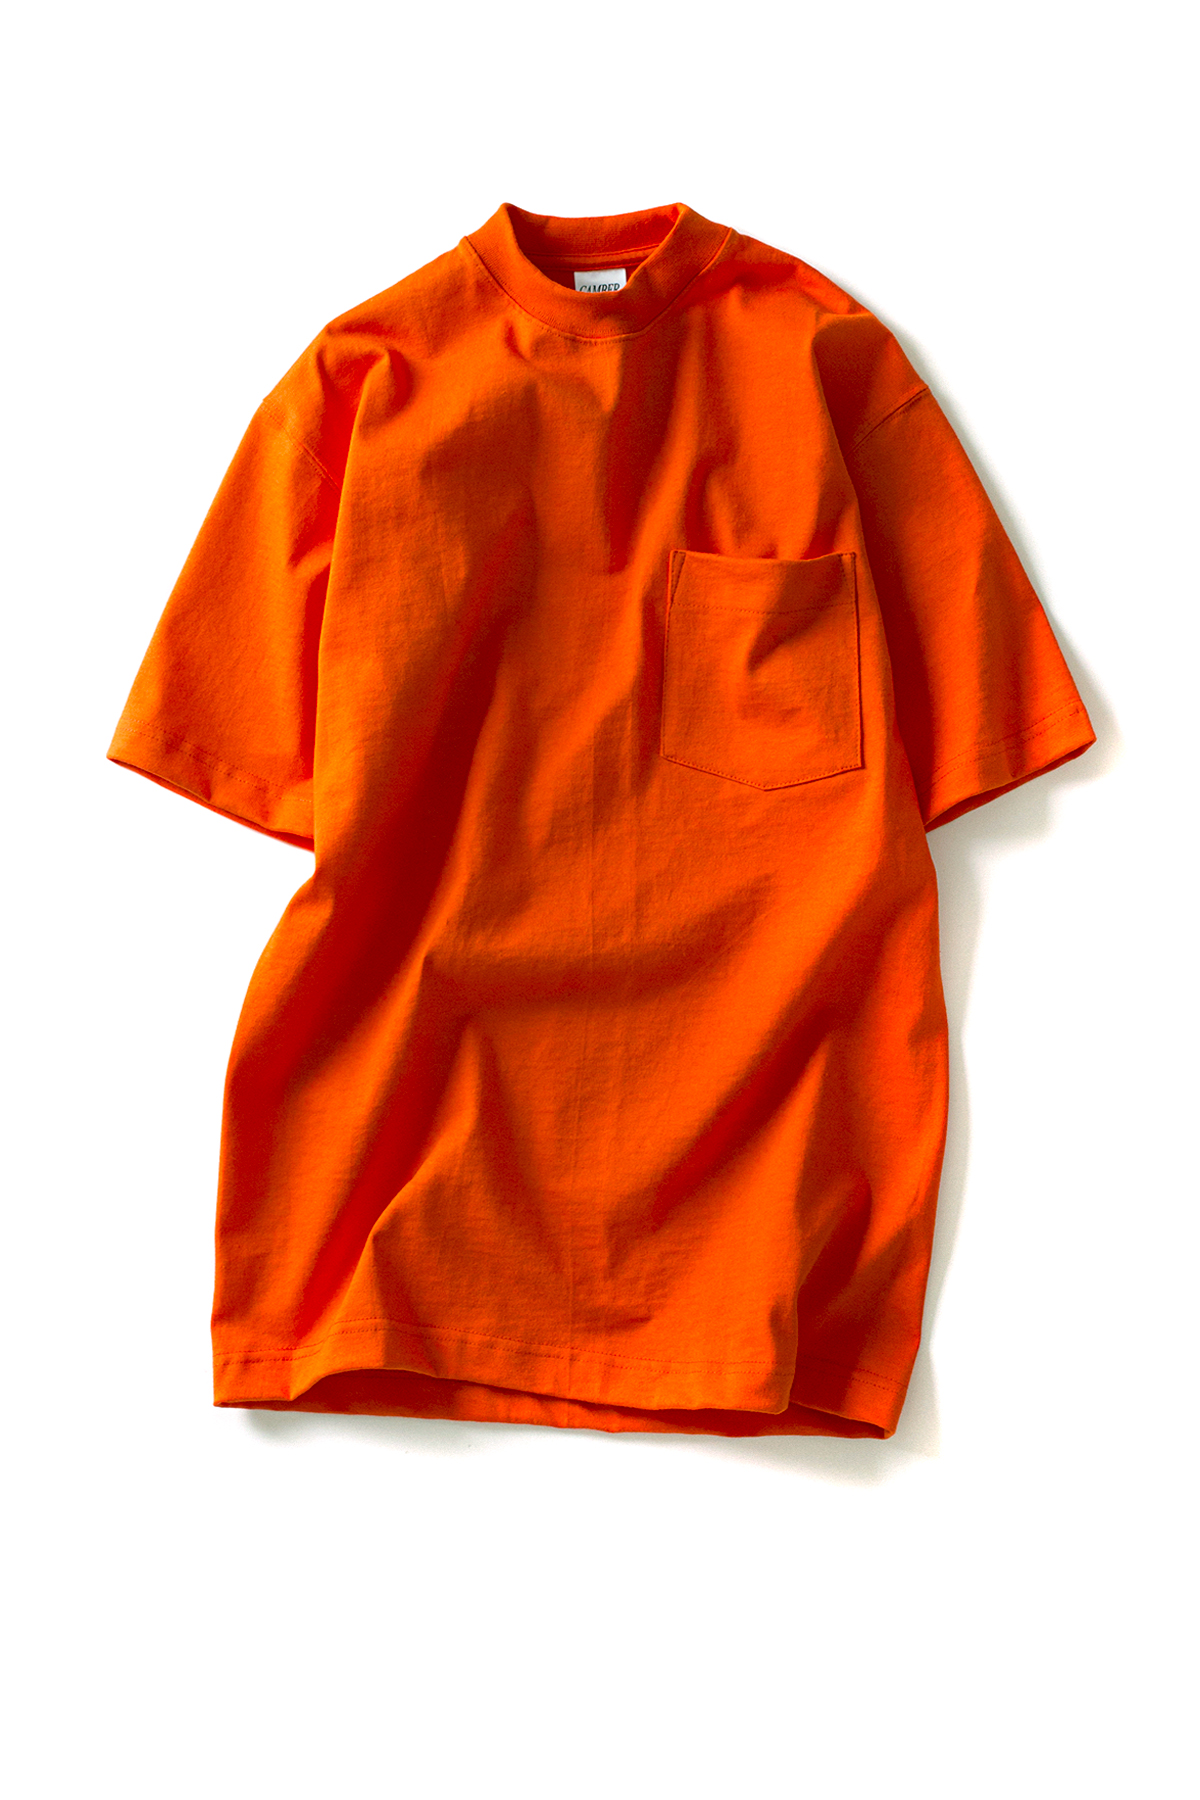 CAMBER : Heavy Weight 8oz S/S Pocket T-Shirts (Orange)